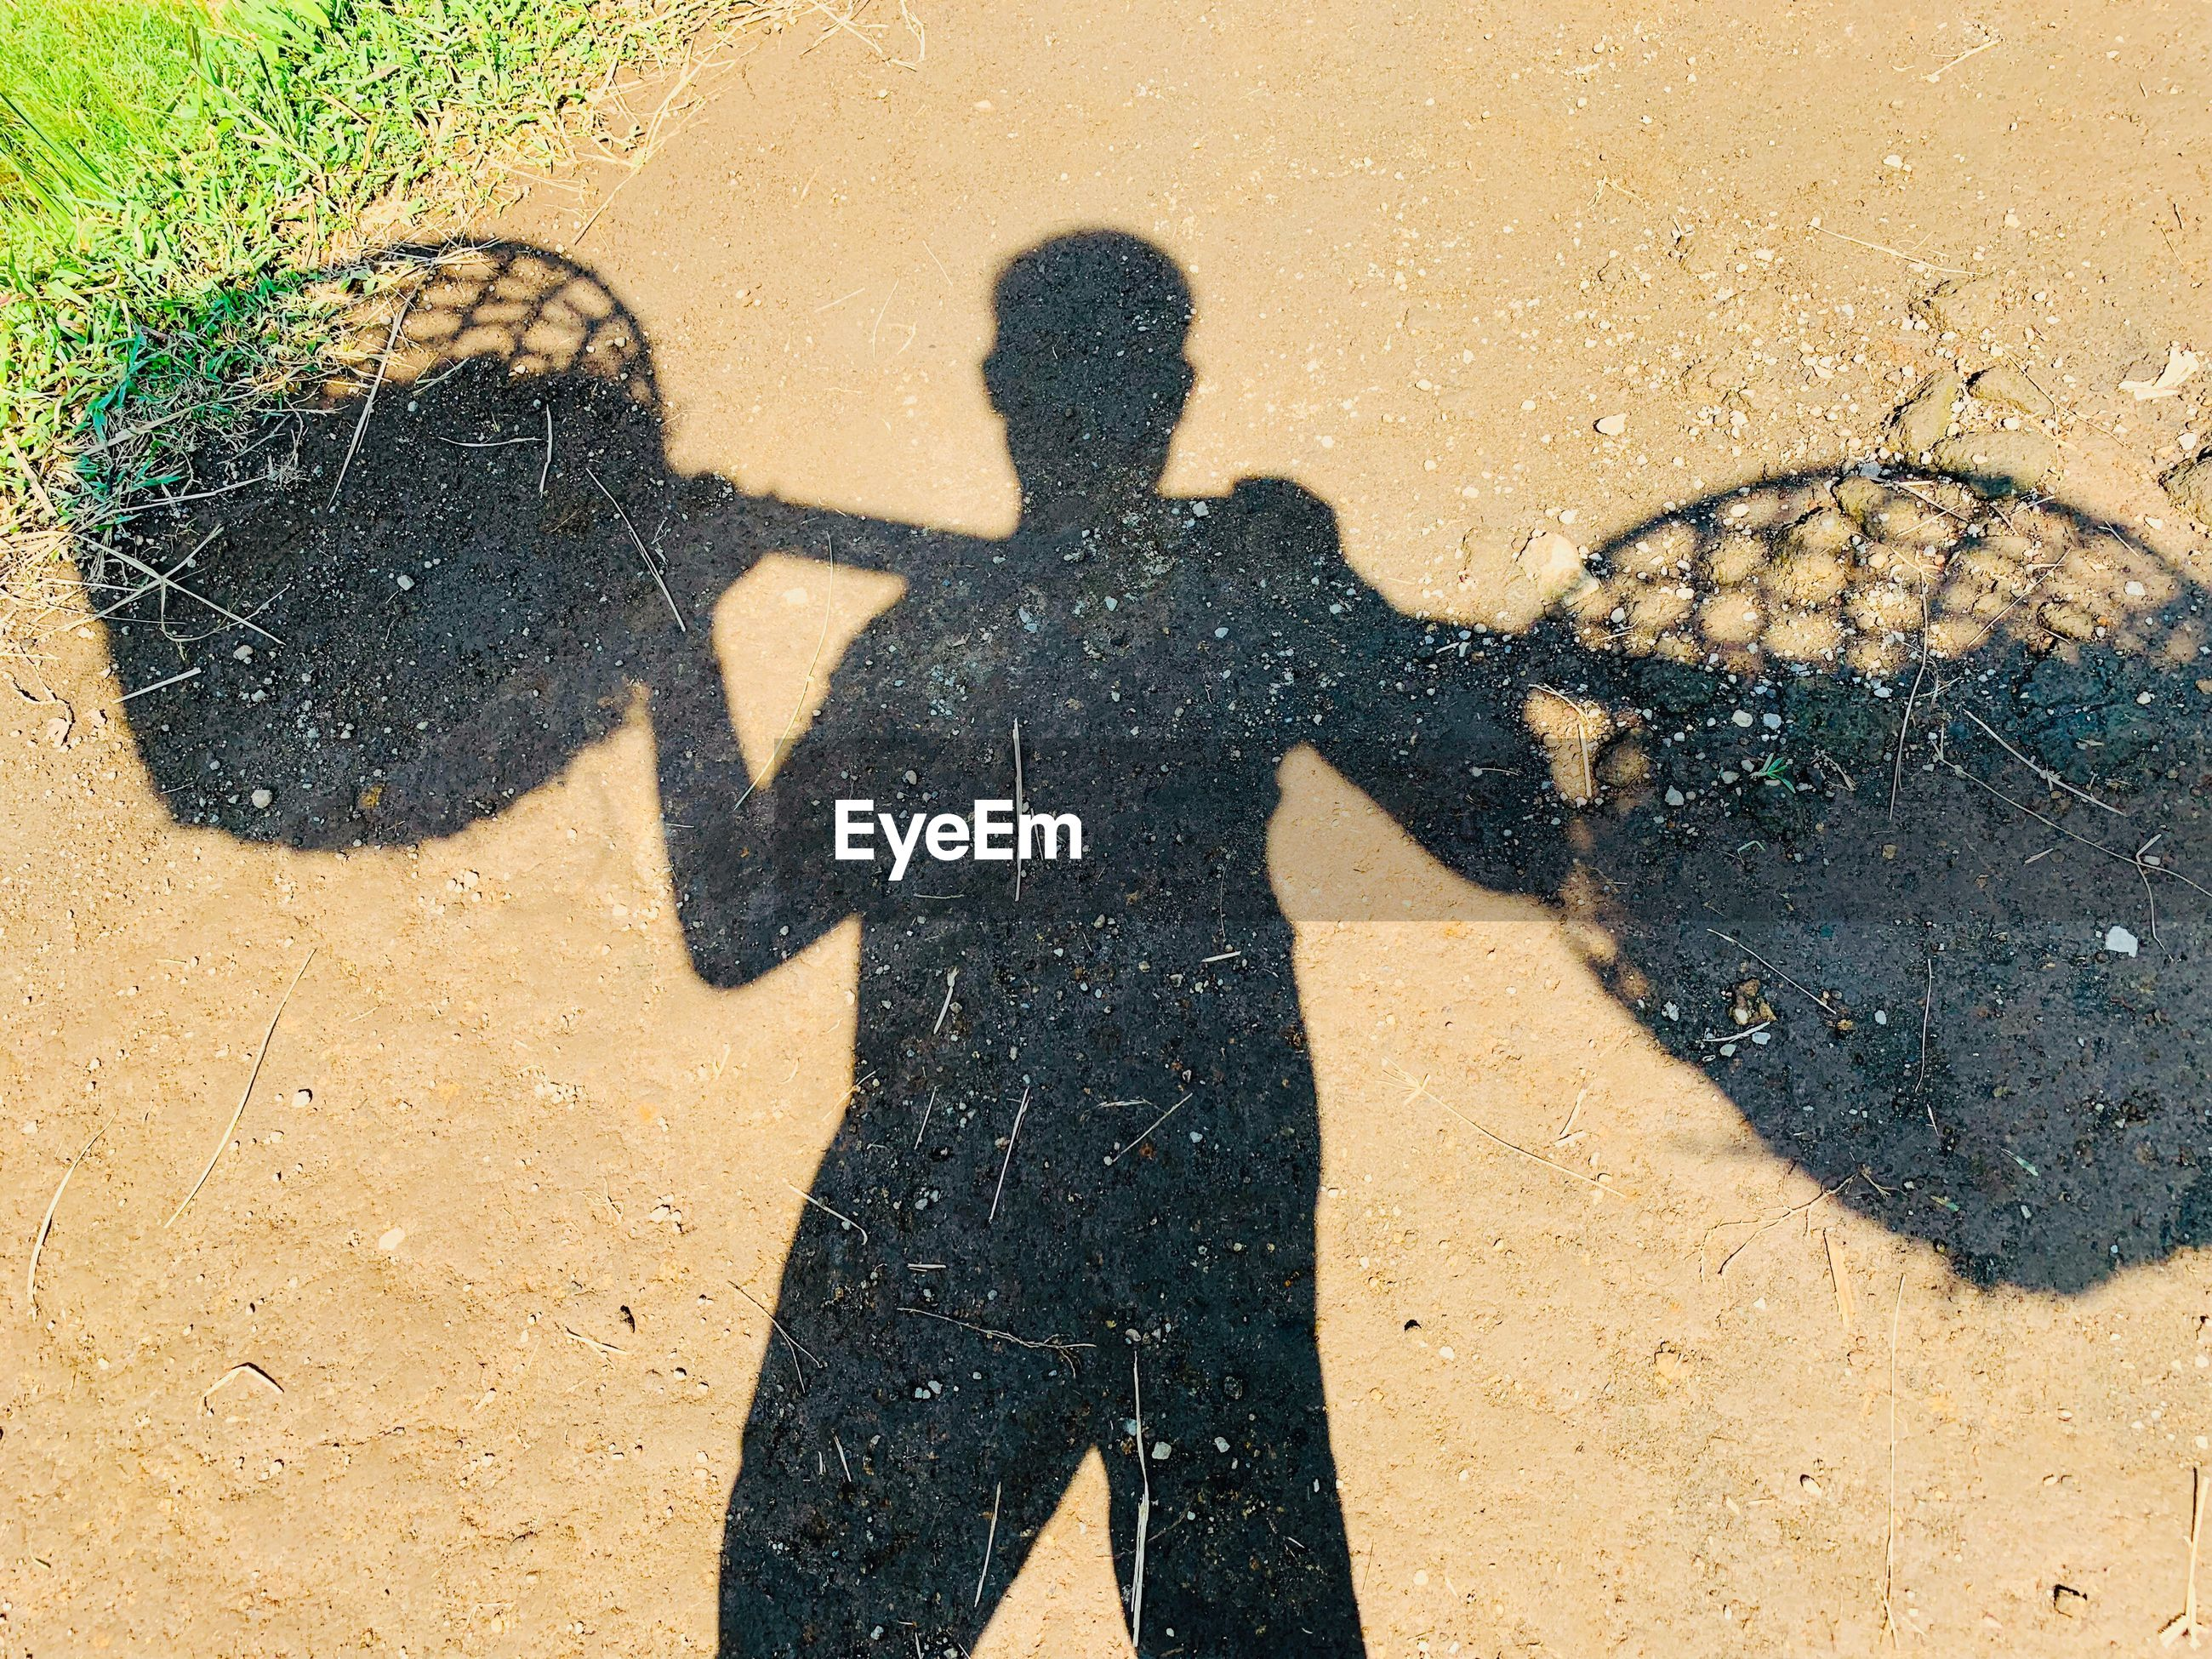 Shadow of man carrying containers on land